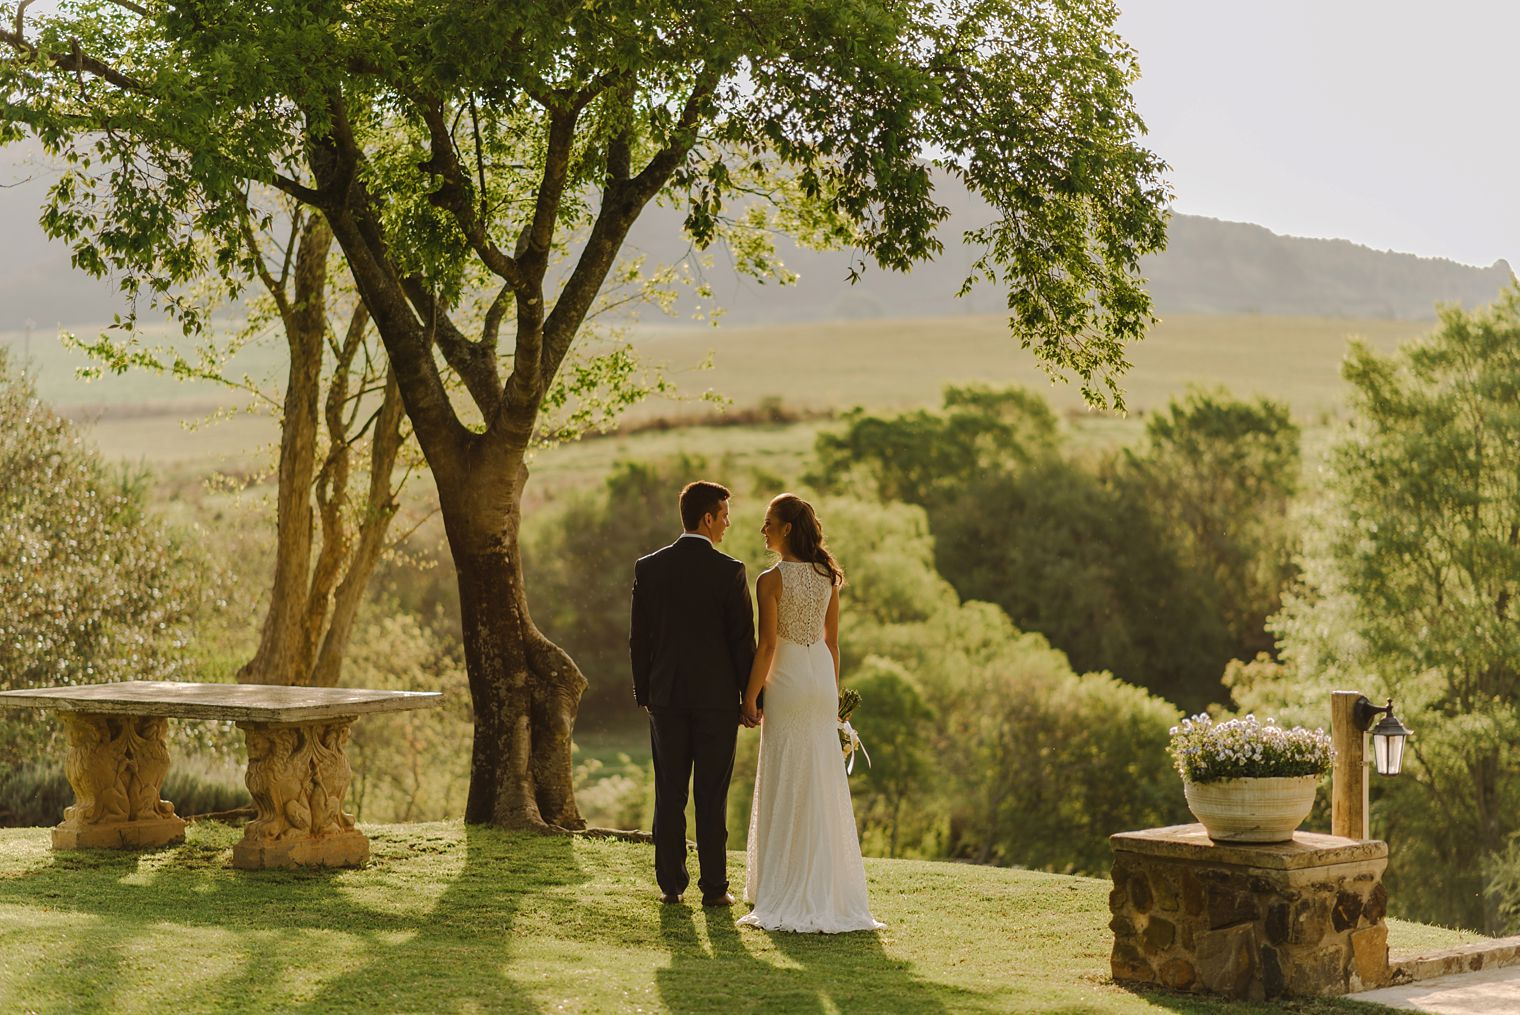 kzn midlands destination wedding